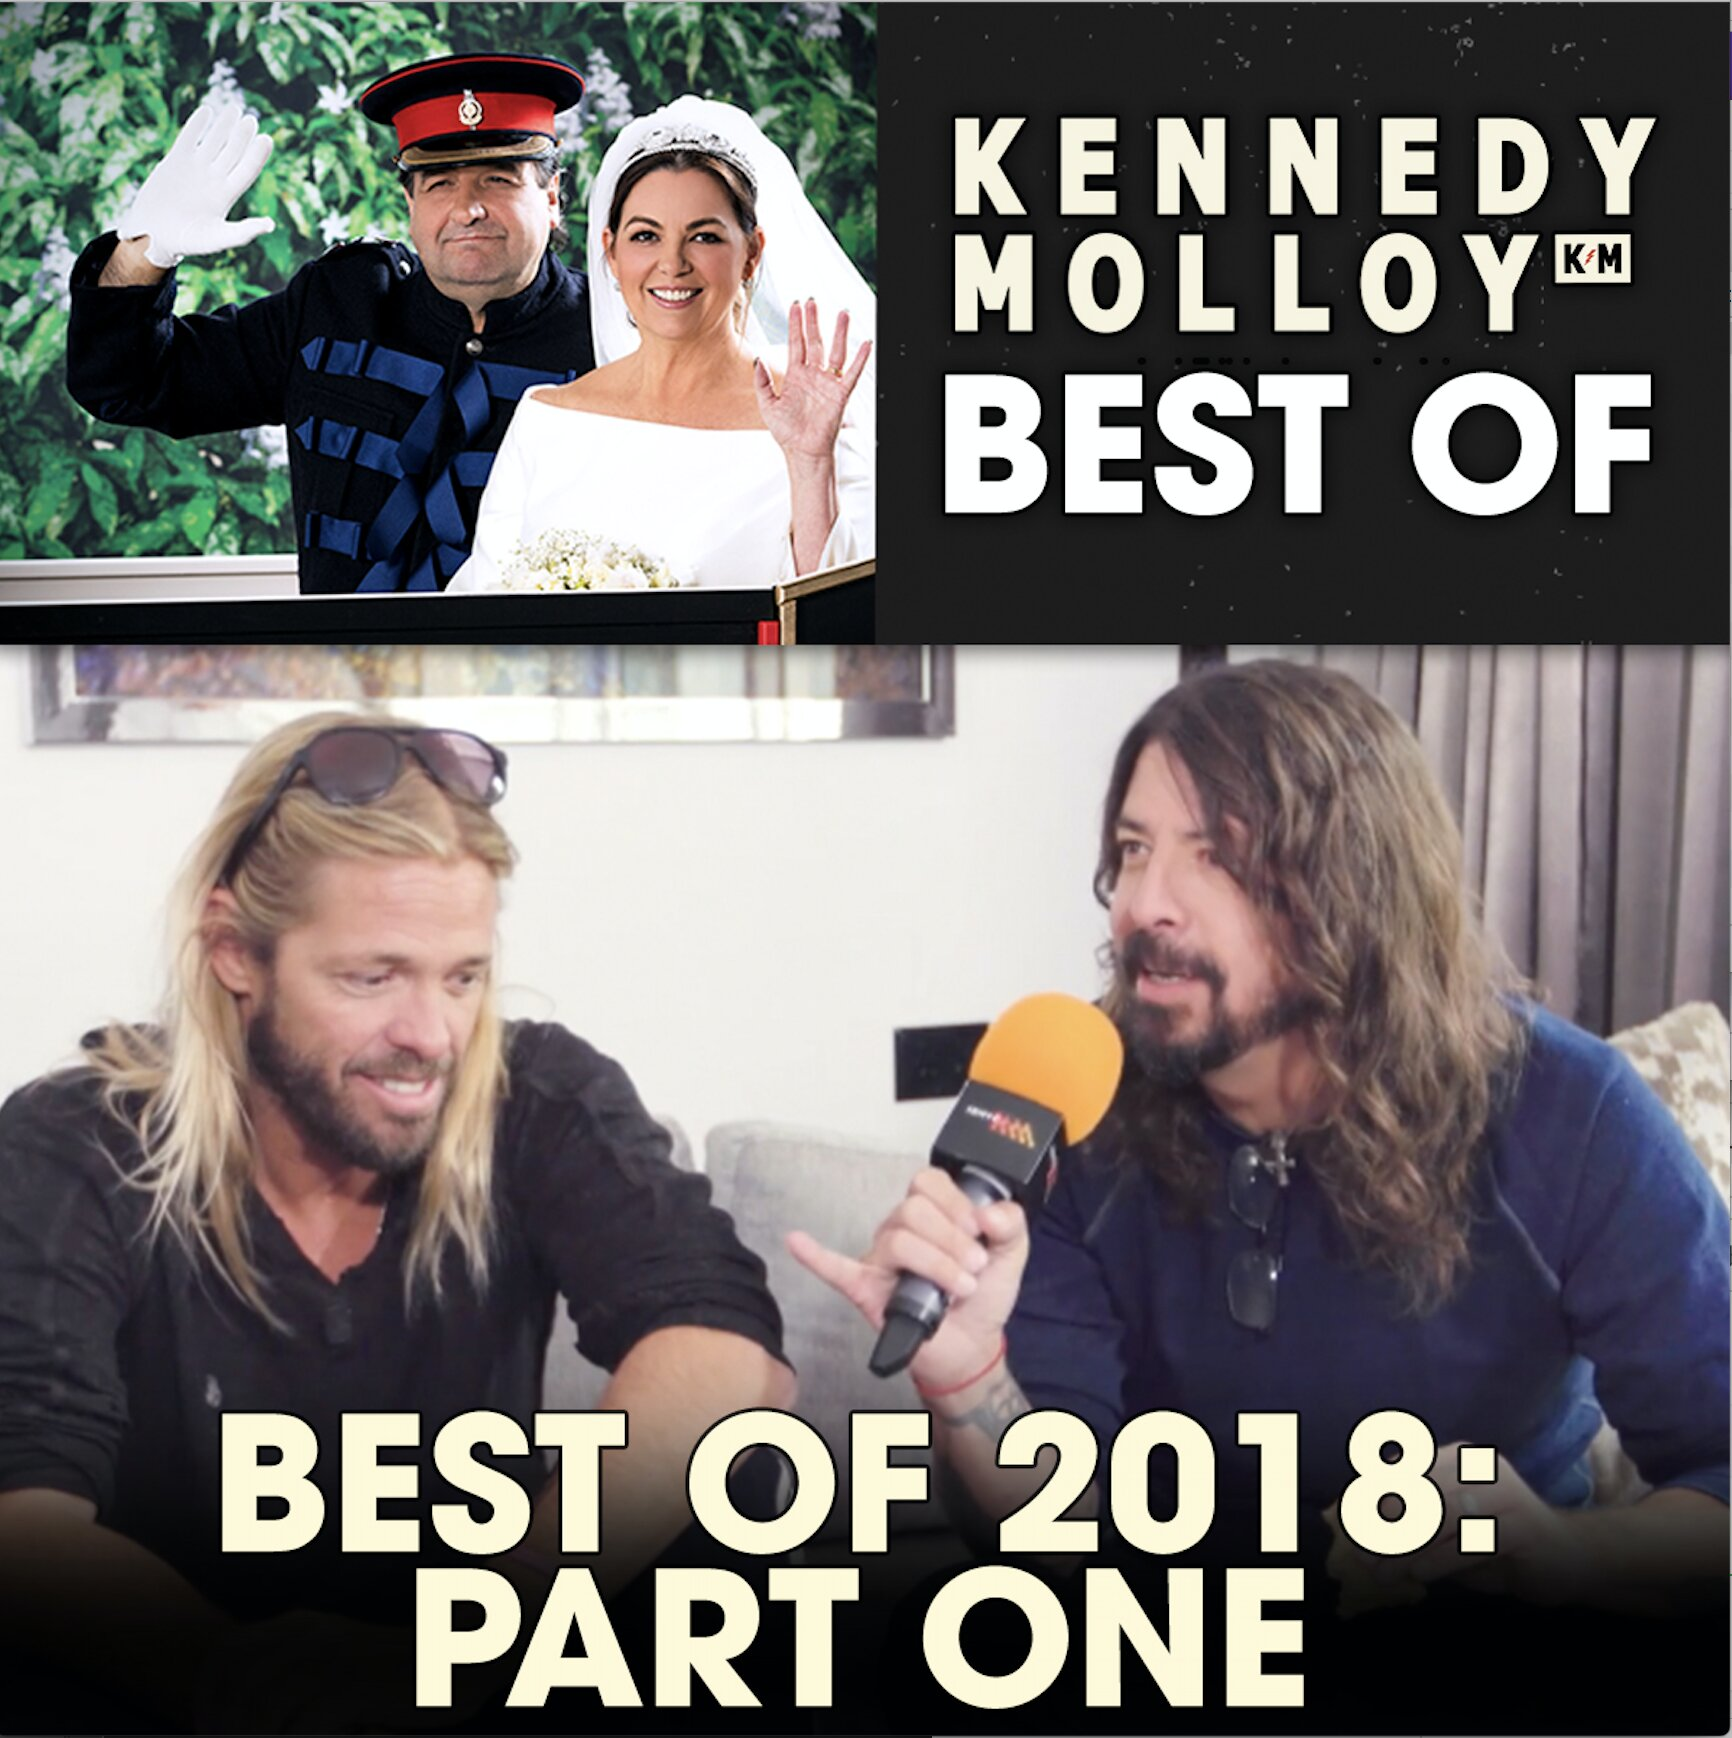 Kennedy Molloy's Best Of 2018: Part 1